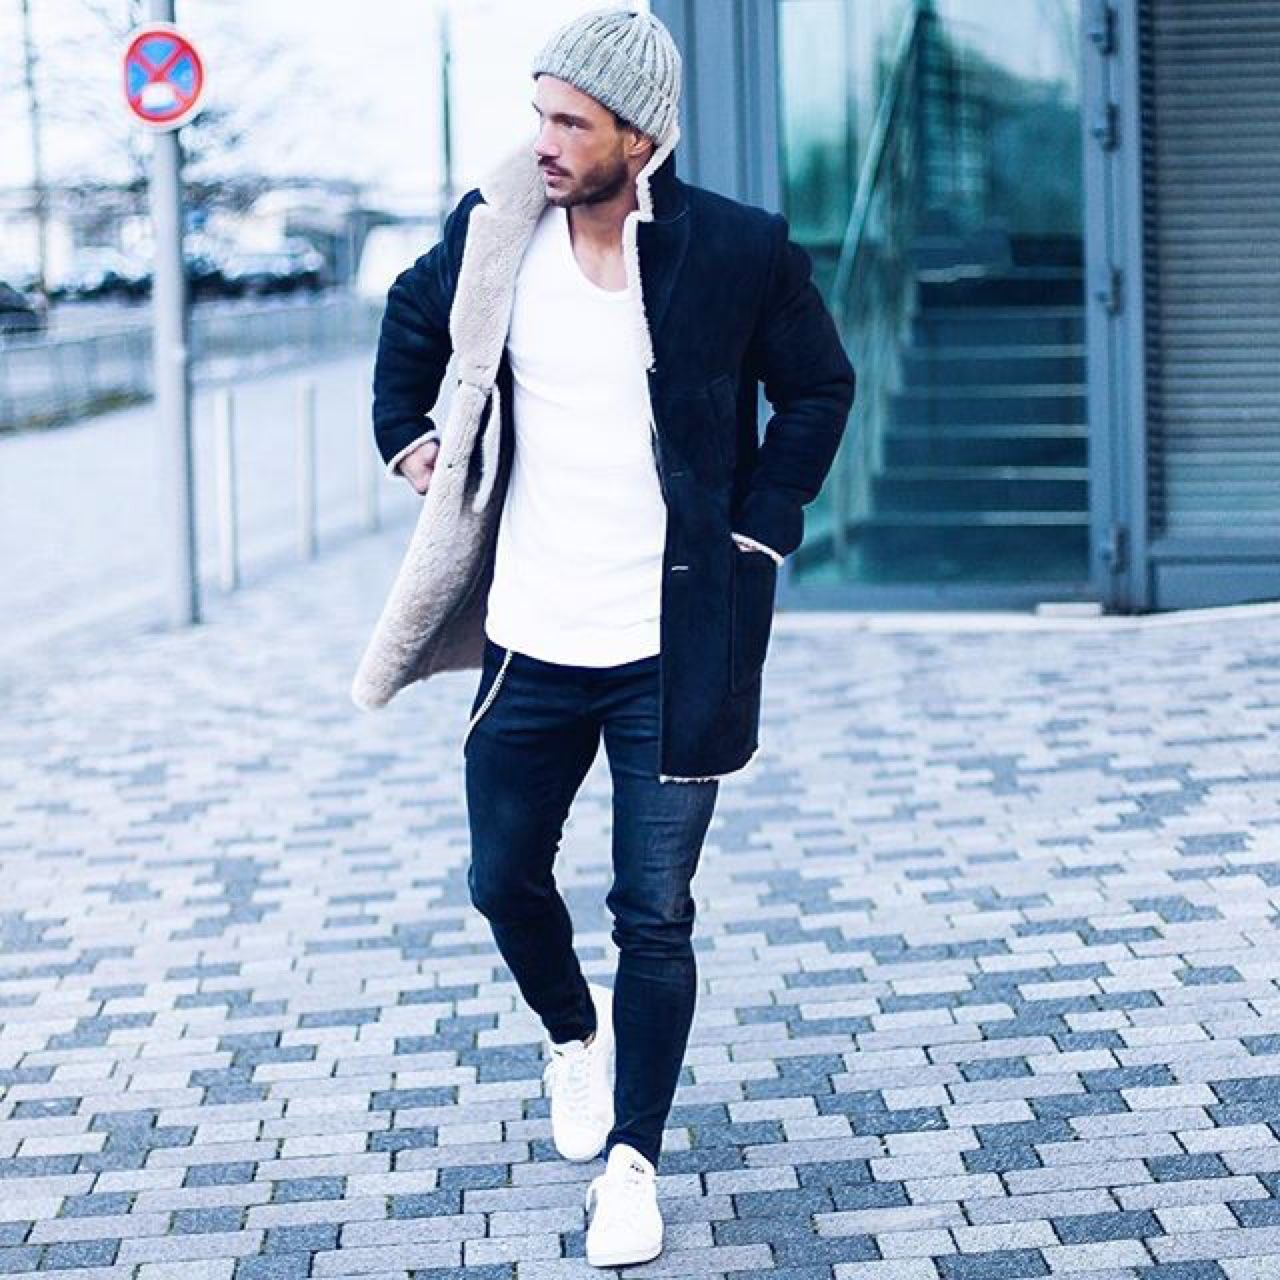 dress - Fashion Winter style men pictures video